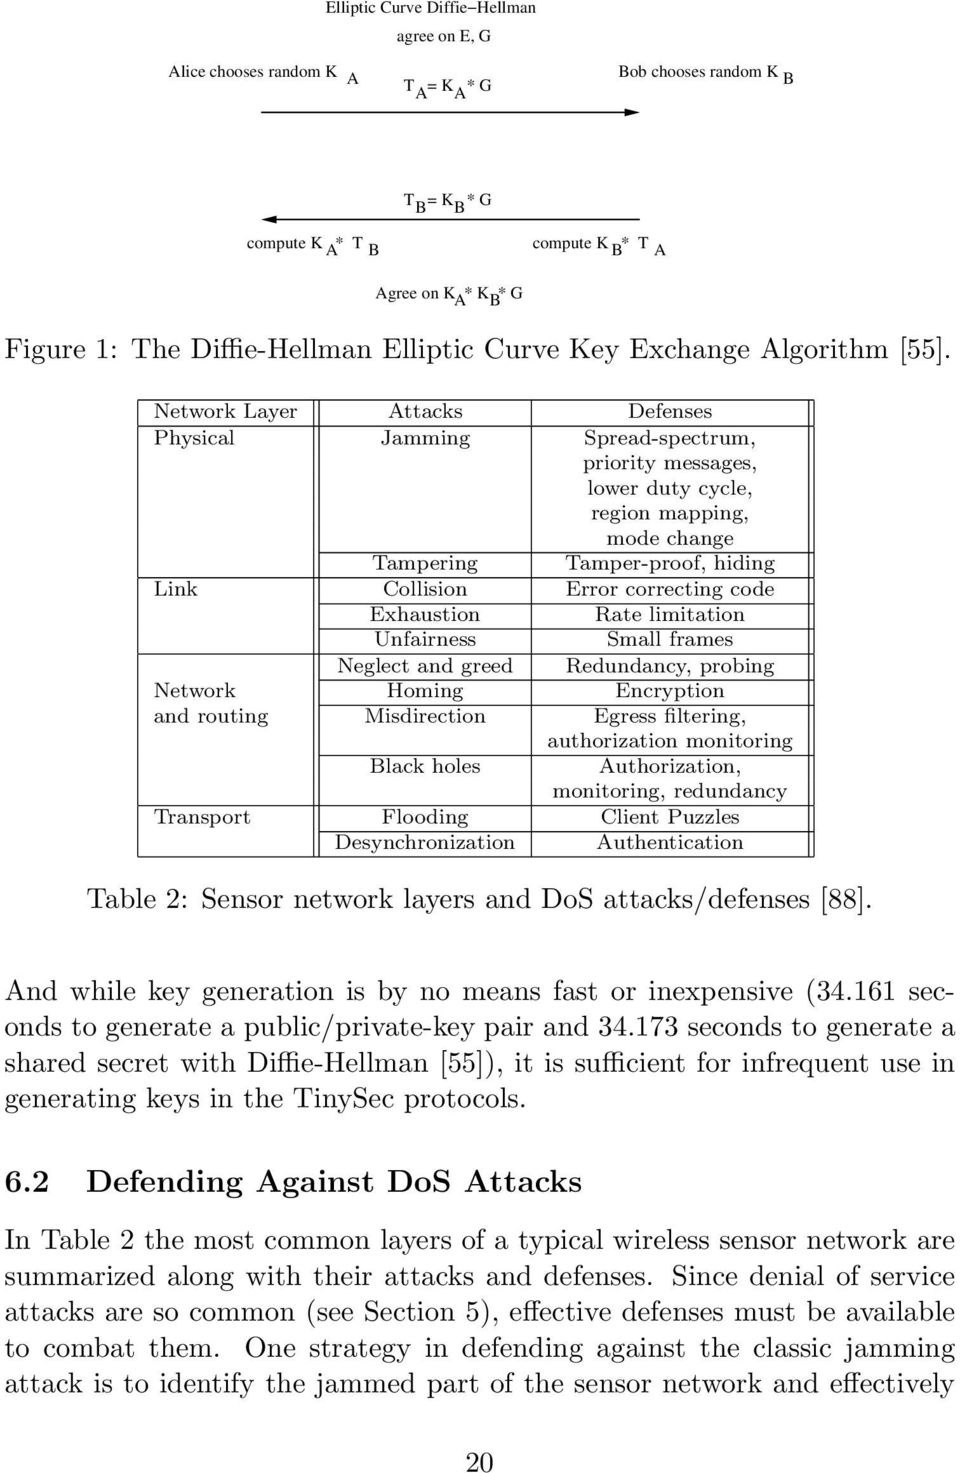 Network Layer Attacks Defenses Physical Jamming Spread-spectrum, priority messages, lower duty cycle, region mapping, mode change Tampering Tamper-proof, hiding Link Collision Error correcting code